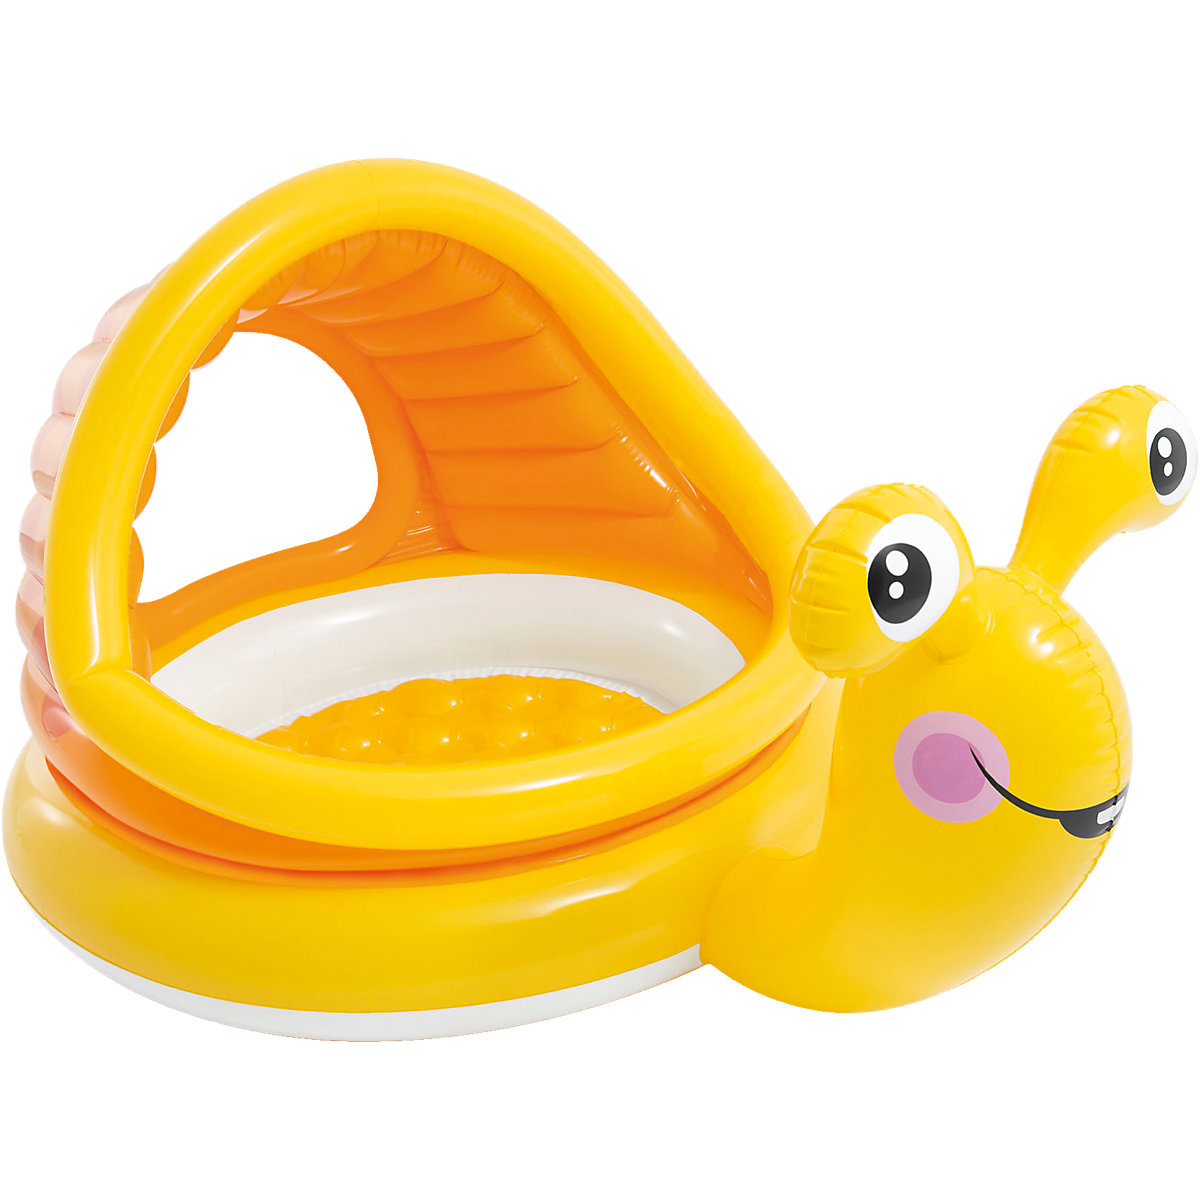 INTEX Swimming Pool 7225934 inflatable pools Accessories Activity & Gear tub Kids Baby for children large adult swimming pool children swimming pools different size pvc pool inflate swimming tools